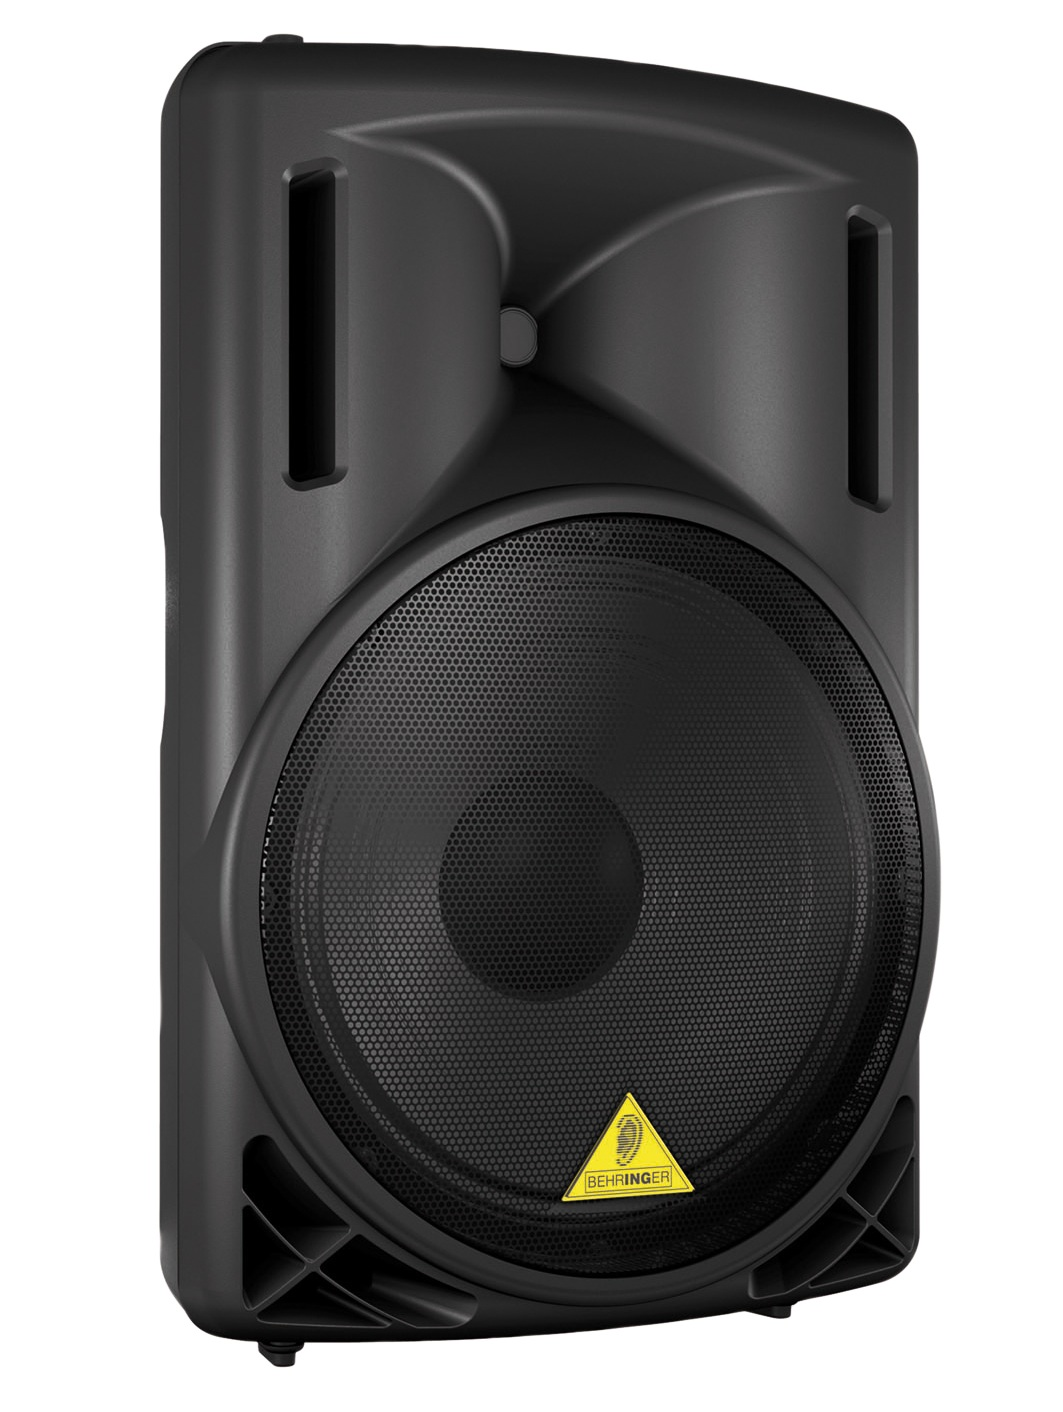 Behringer's B215D features an integrated sound processor as well as a 550W Class D amp